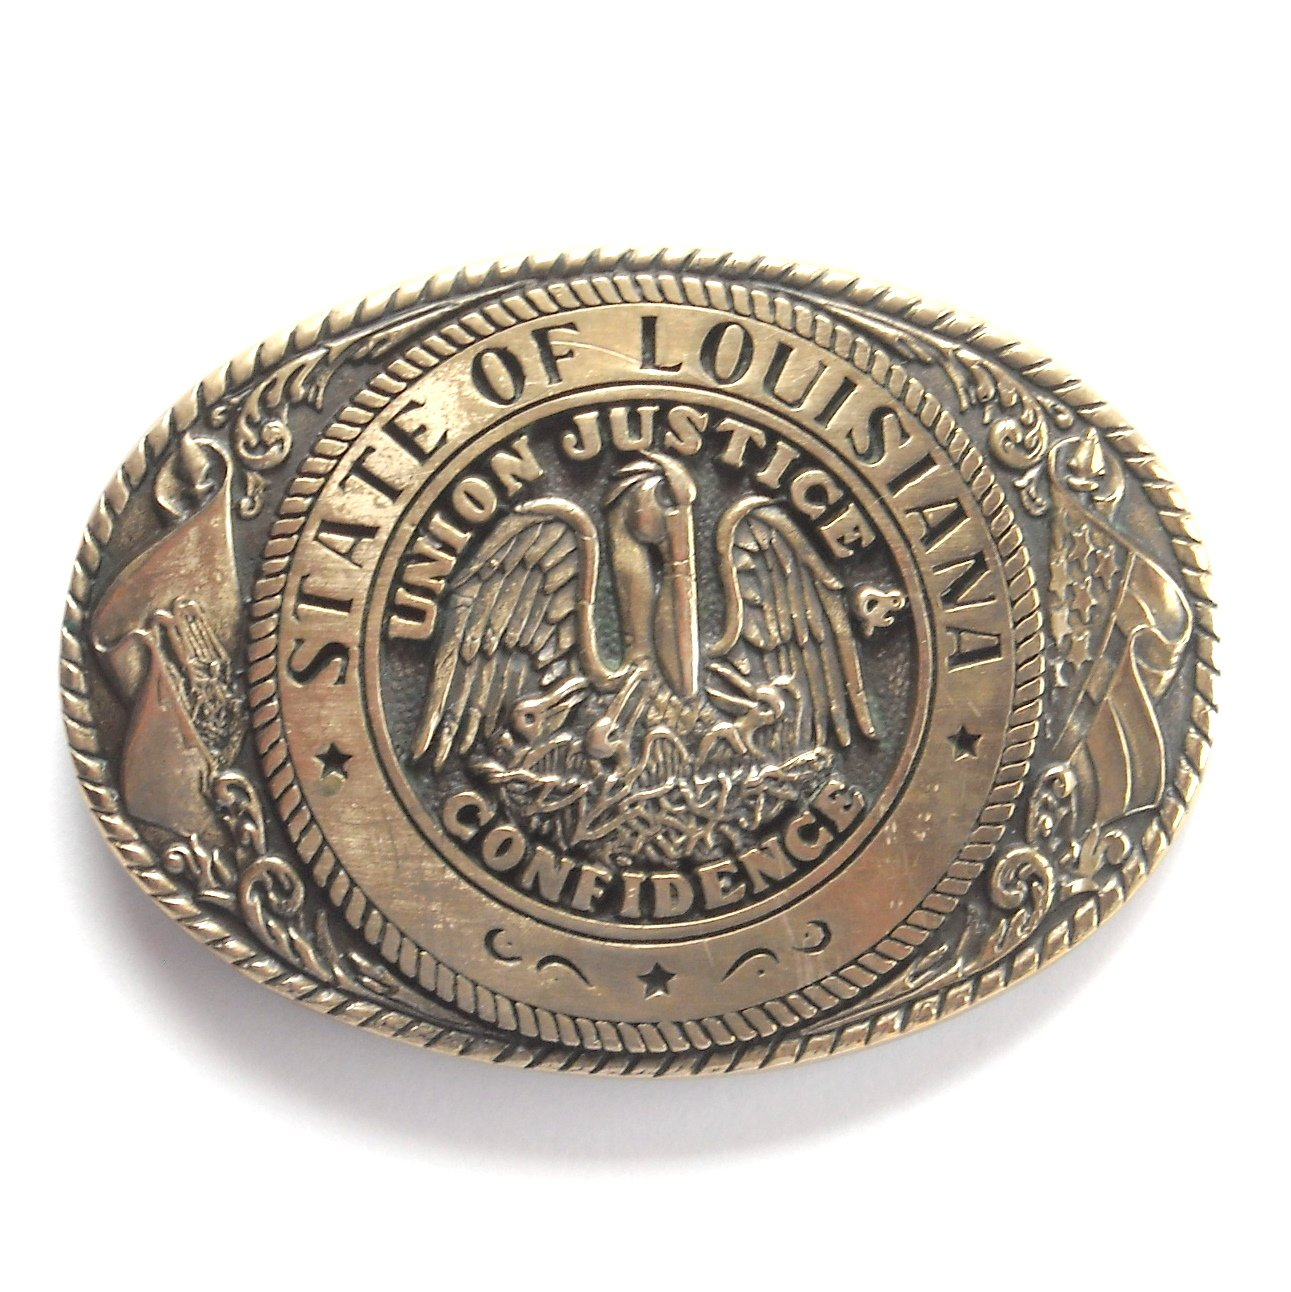 Vintage Tony Lama Great Seal Of The State Of Louisiana brass belt buckle